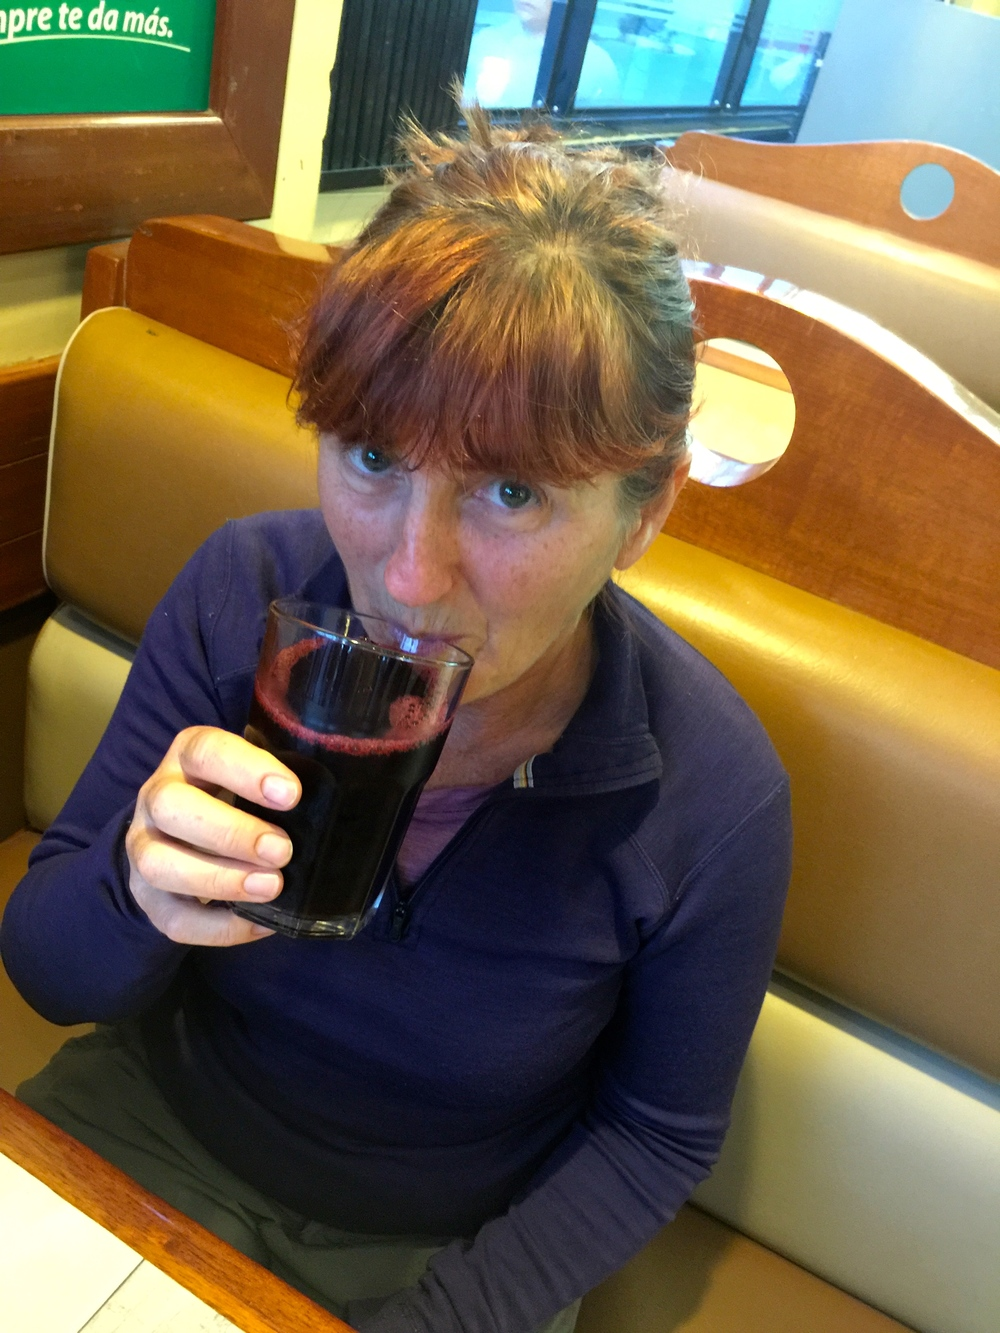 Chicha Morada - an excellent purple drink in Peru, made from purple corn, believe it or not.  Delicious, and very popular.